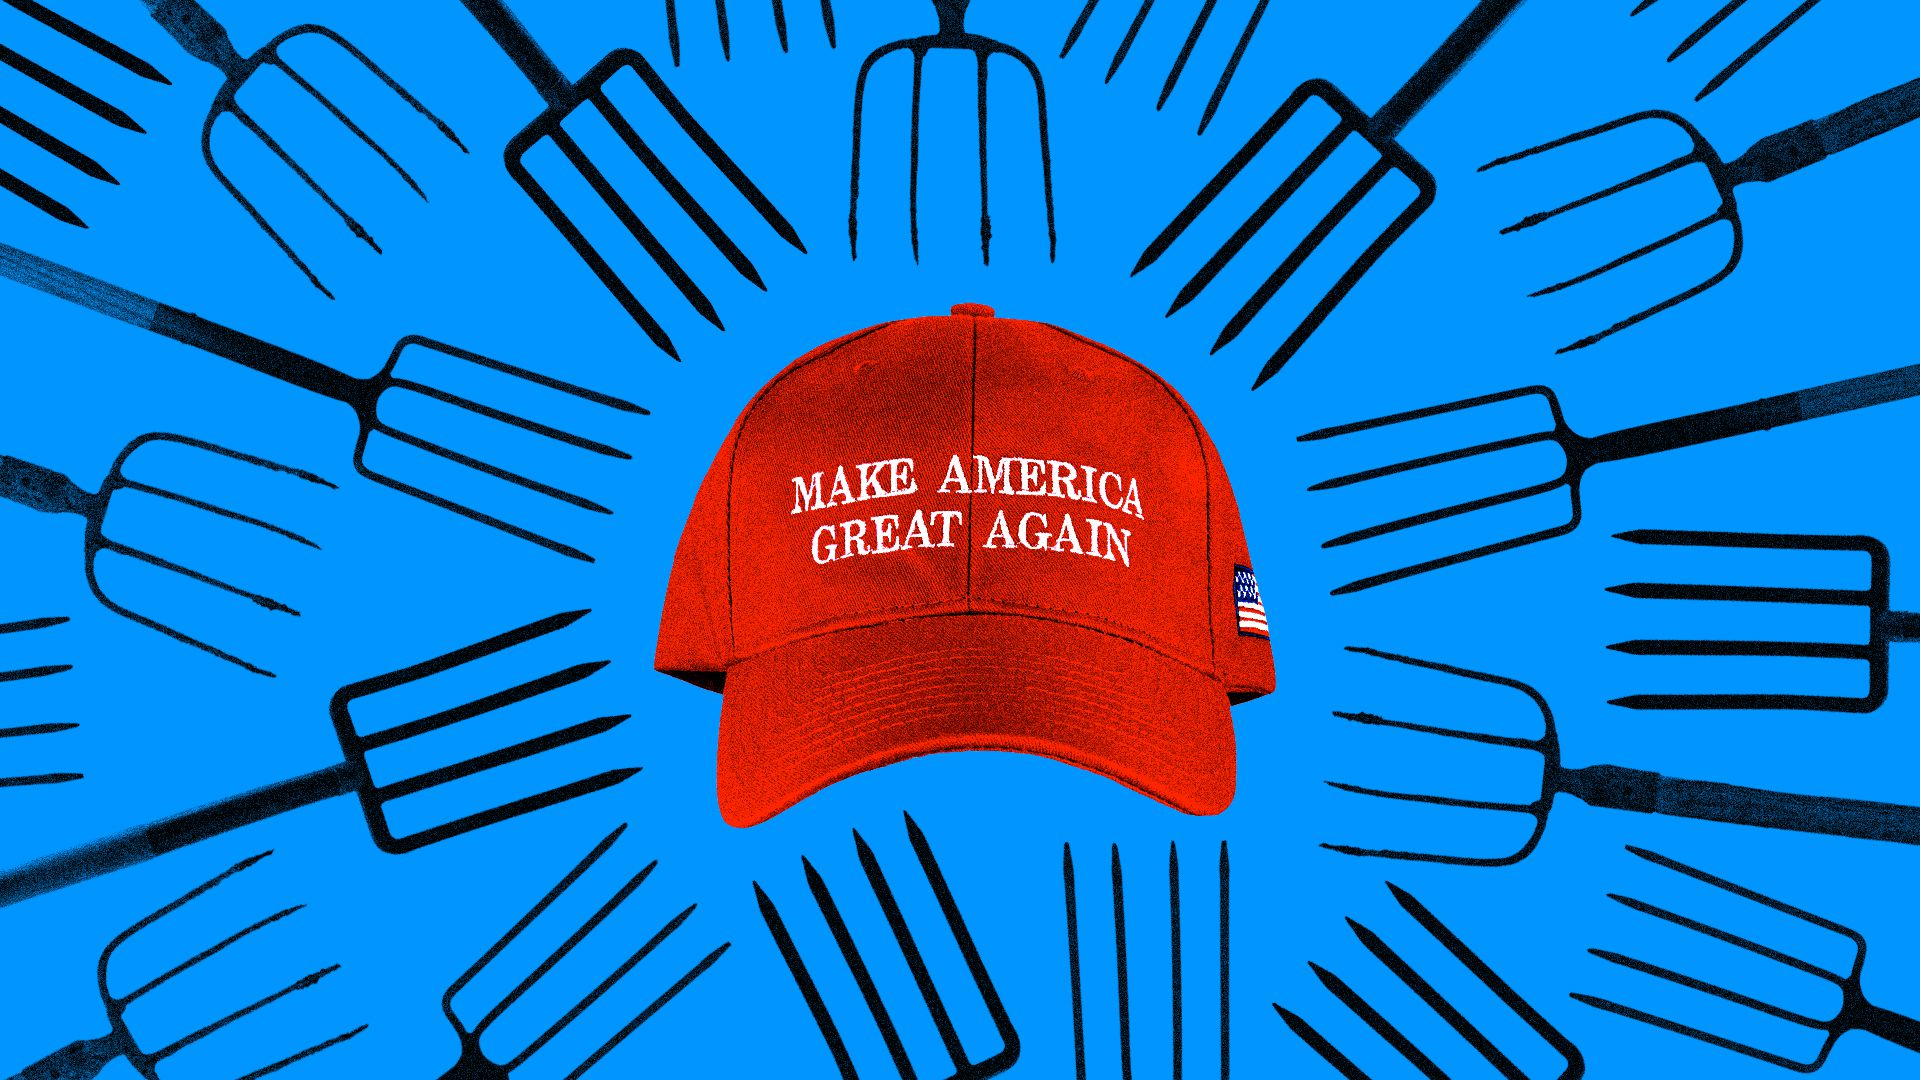 MAGA hat surrounded by pitchforks.